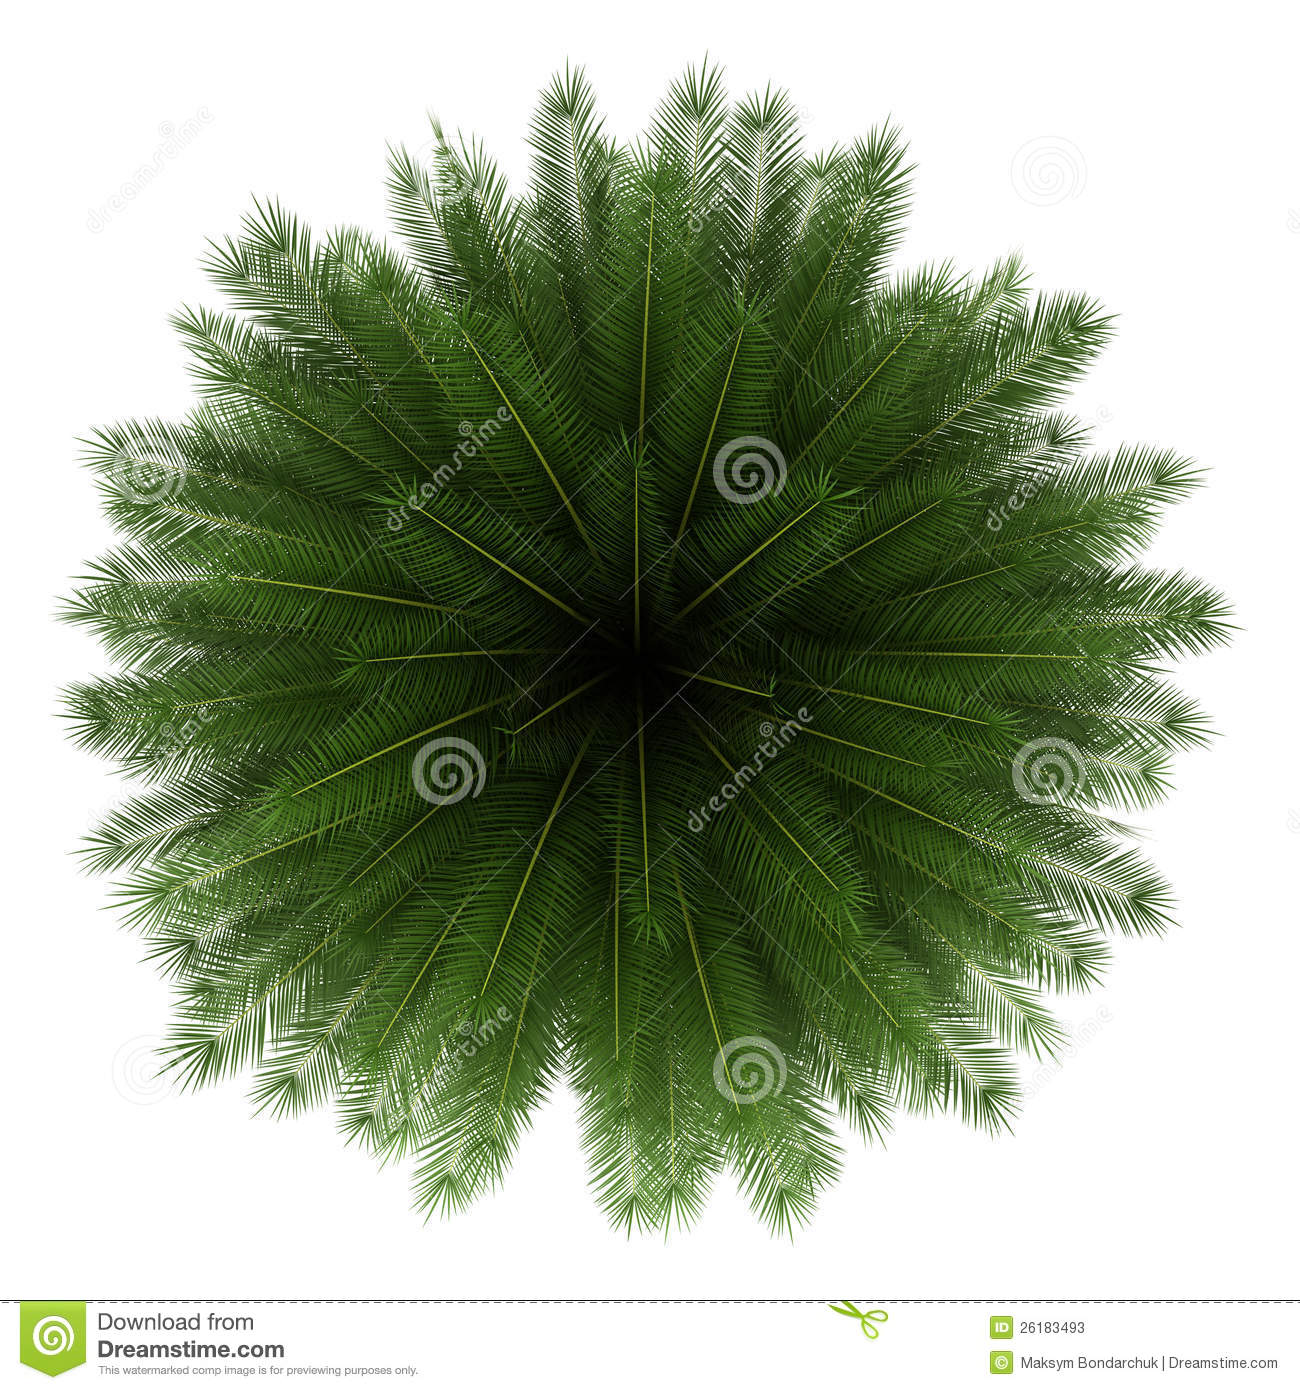 Top View Of Canary Island Date Palm Tree Isolated Stock Photos.